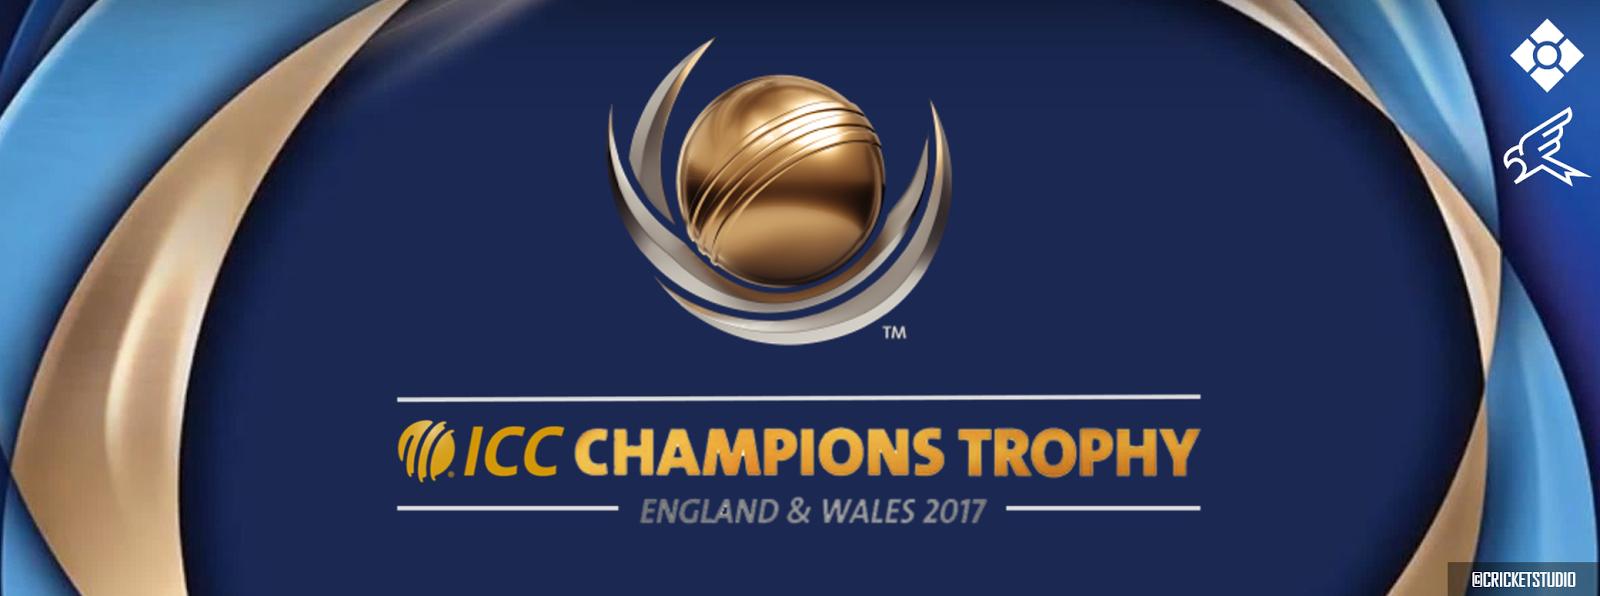 W2 STUDIO INCS WORLD WIDE CRICKET Presents ICC CHAMPIONS TROPHY 2017 PATCH For EA SPORTS 07